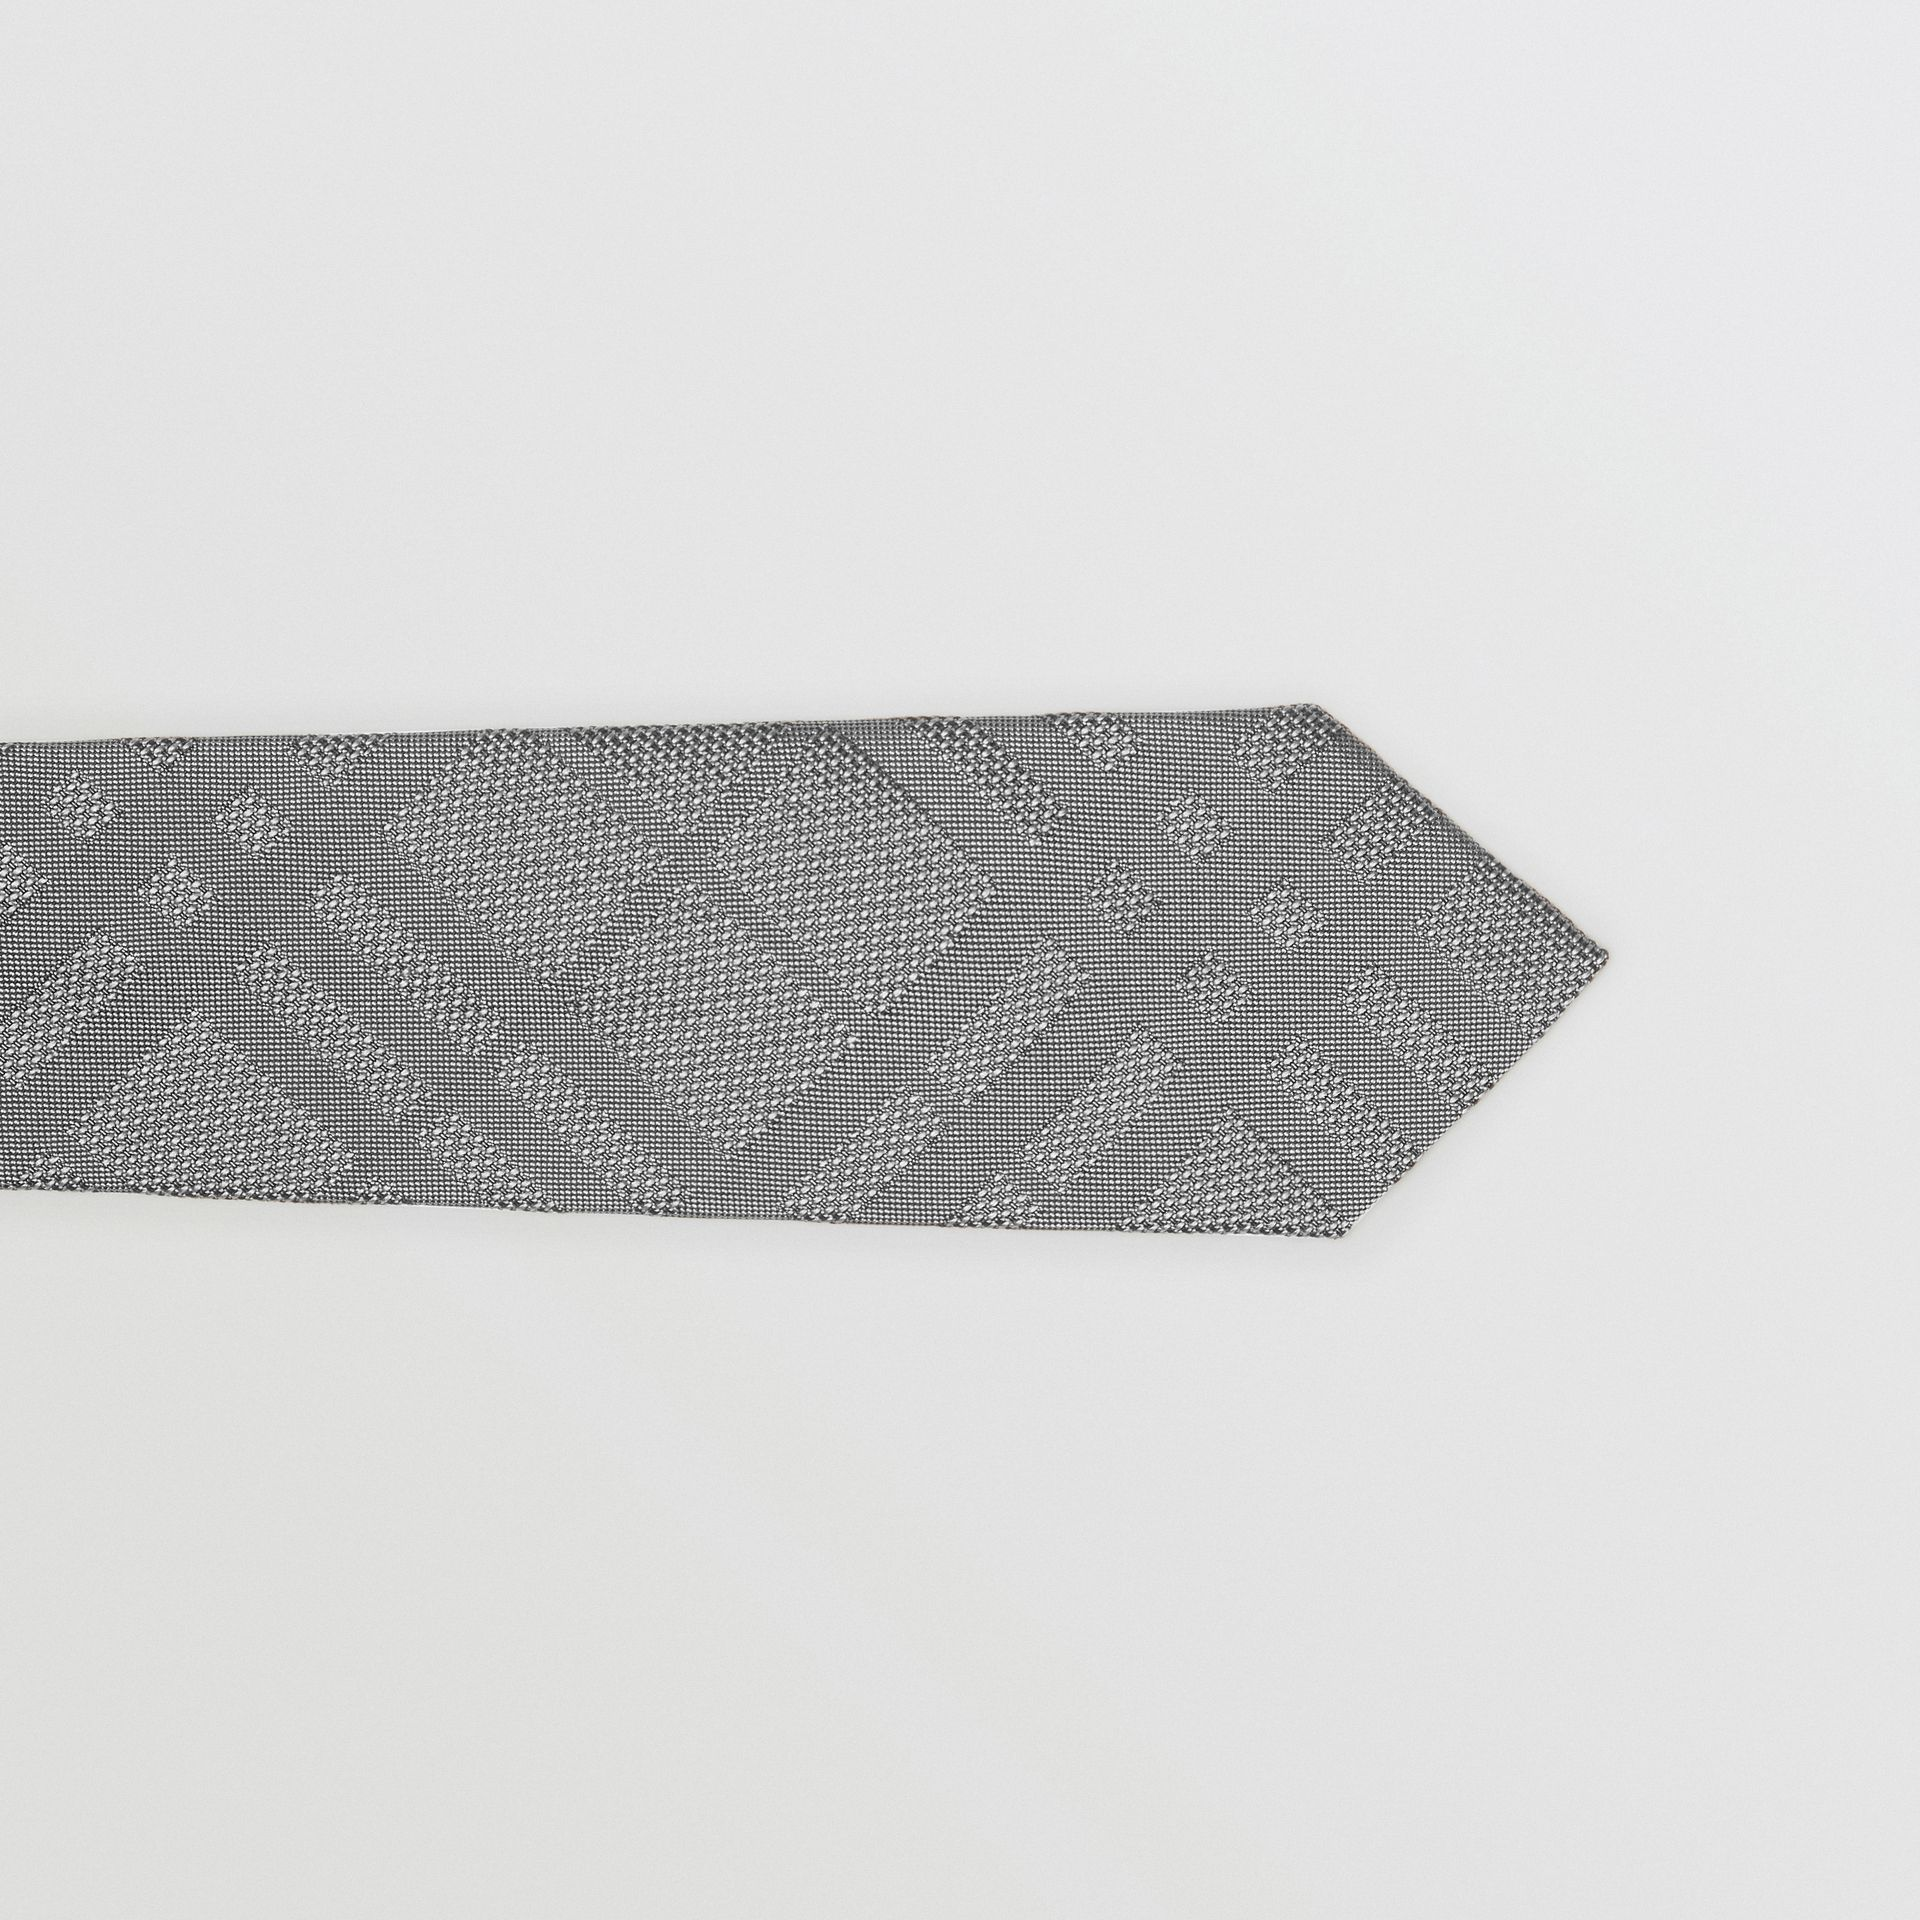 Classic Cut Check Silk Jacquard Tie in Charcoal - Men | Burberry Canada - gallery image 1